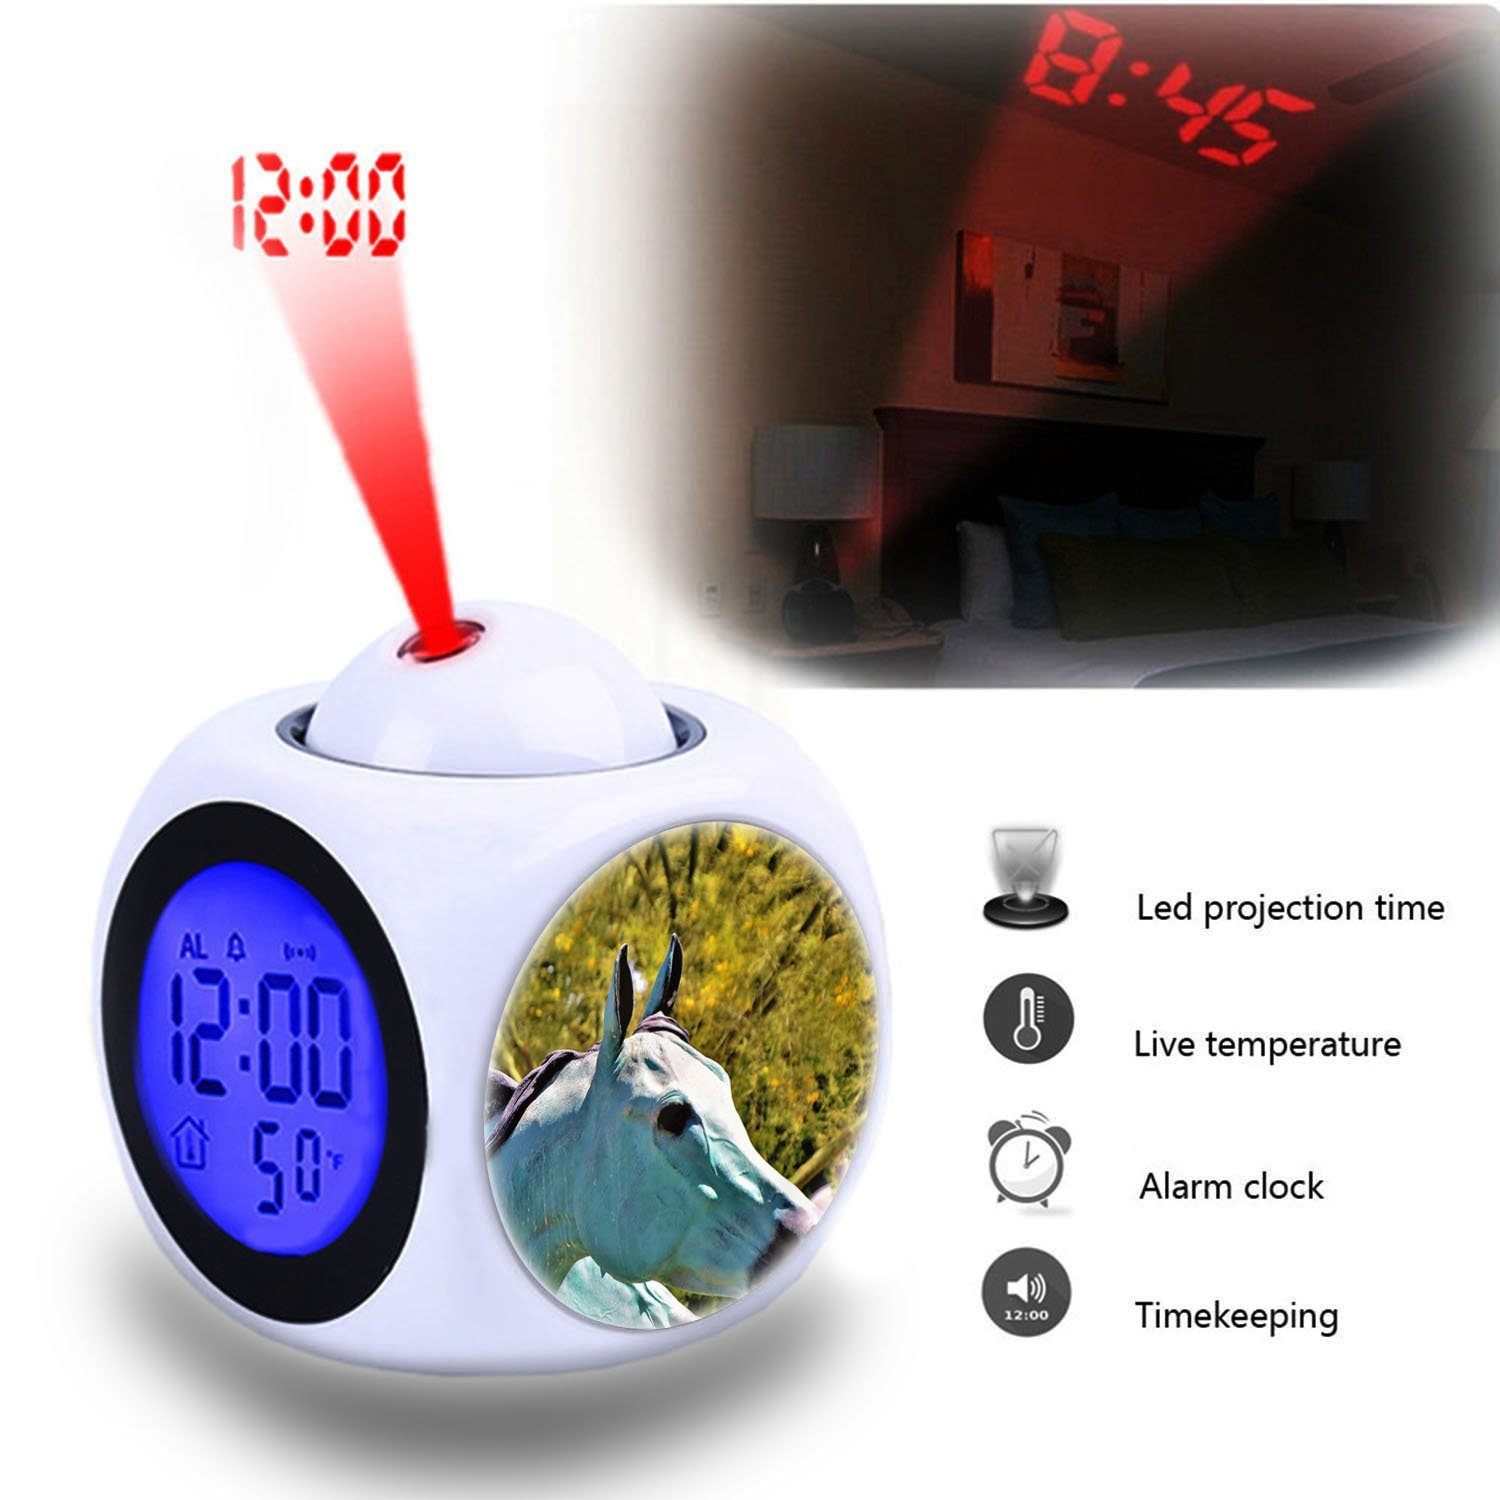 Projection Alarm Clock Wake Up Bedroom with Data and Temperature Display Talking Function, LED Wall/Ceiling Projection,Customize The pattern-517.Fountain Metal Blue Horse Statue Girlsight